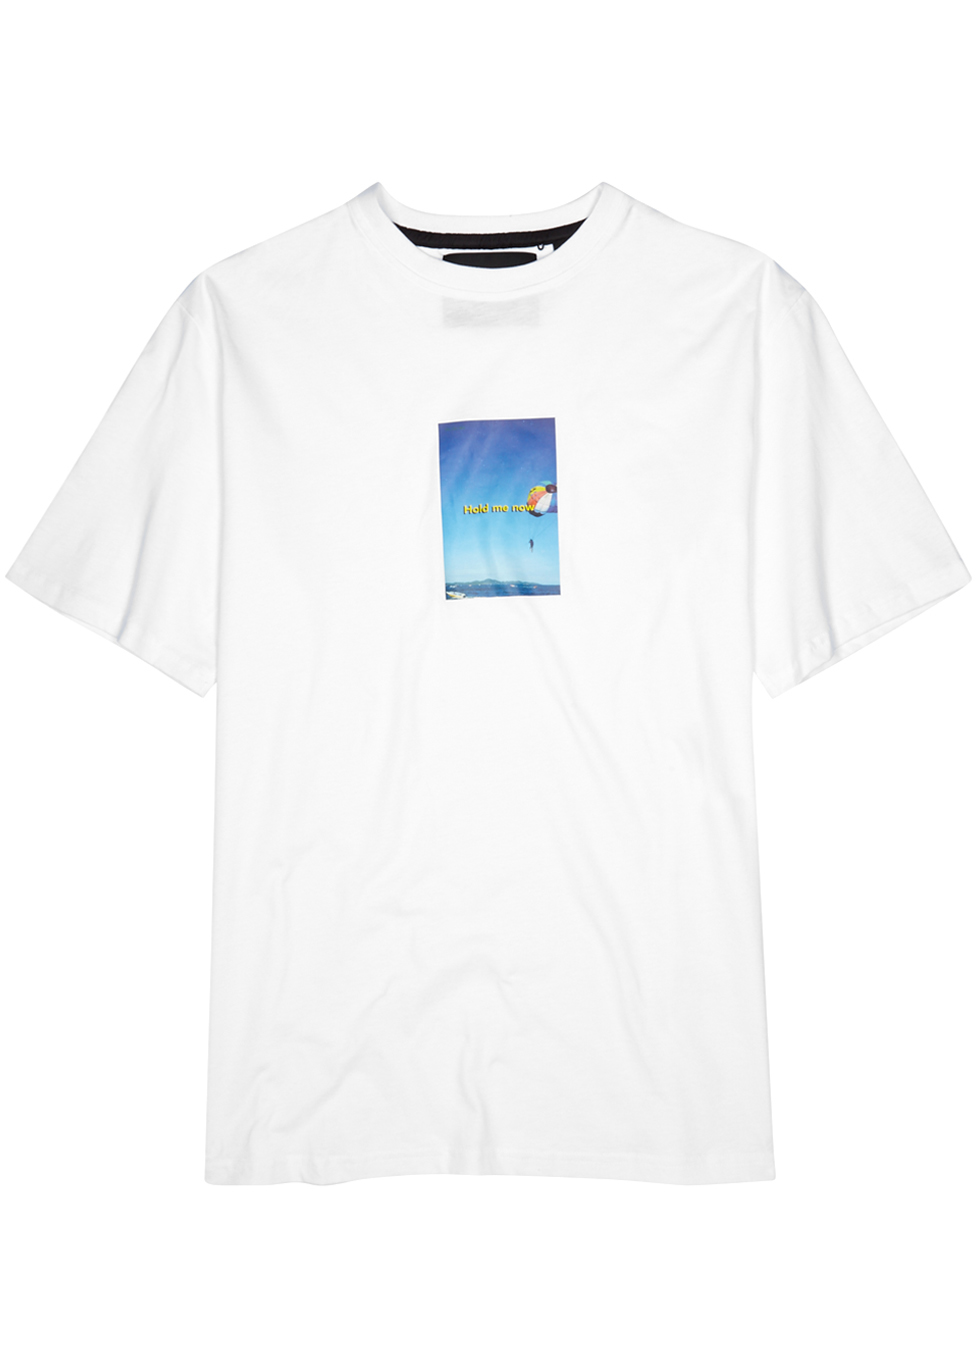 BLOOD BROTHER PAPER WHITE COTTON T-SHIRT